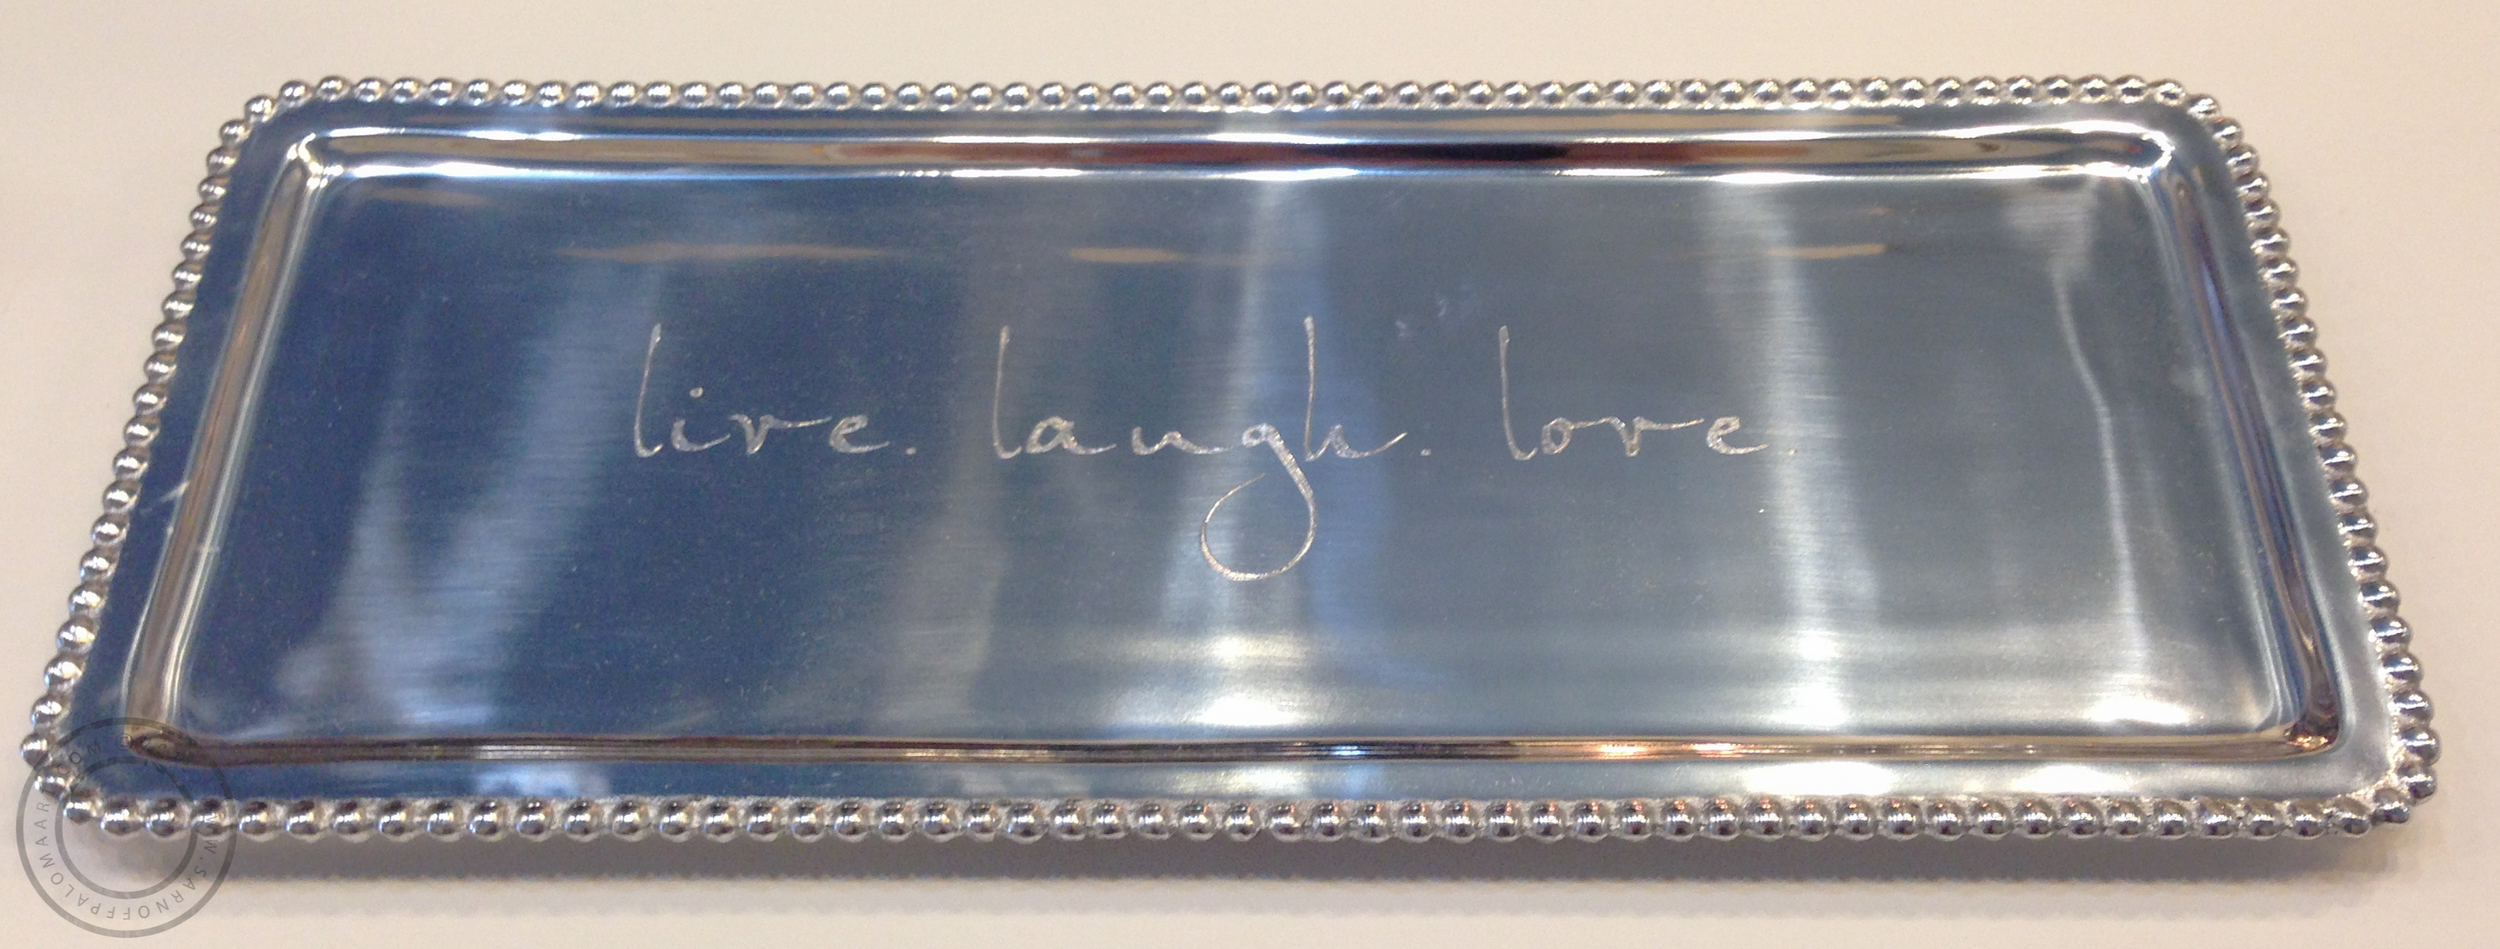 "Mariposa silver ""Live Laugh Love"" tray- $89 (large), $39 (small, not pictured)"